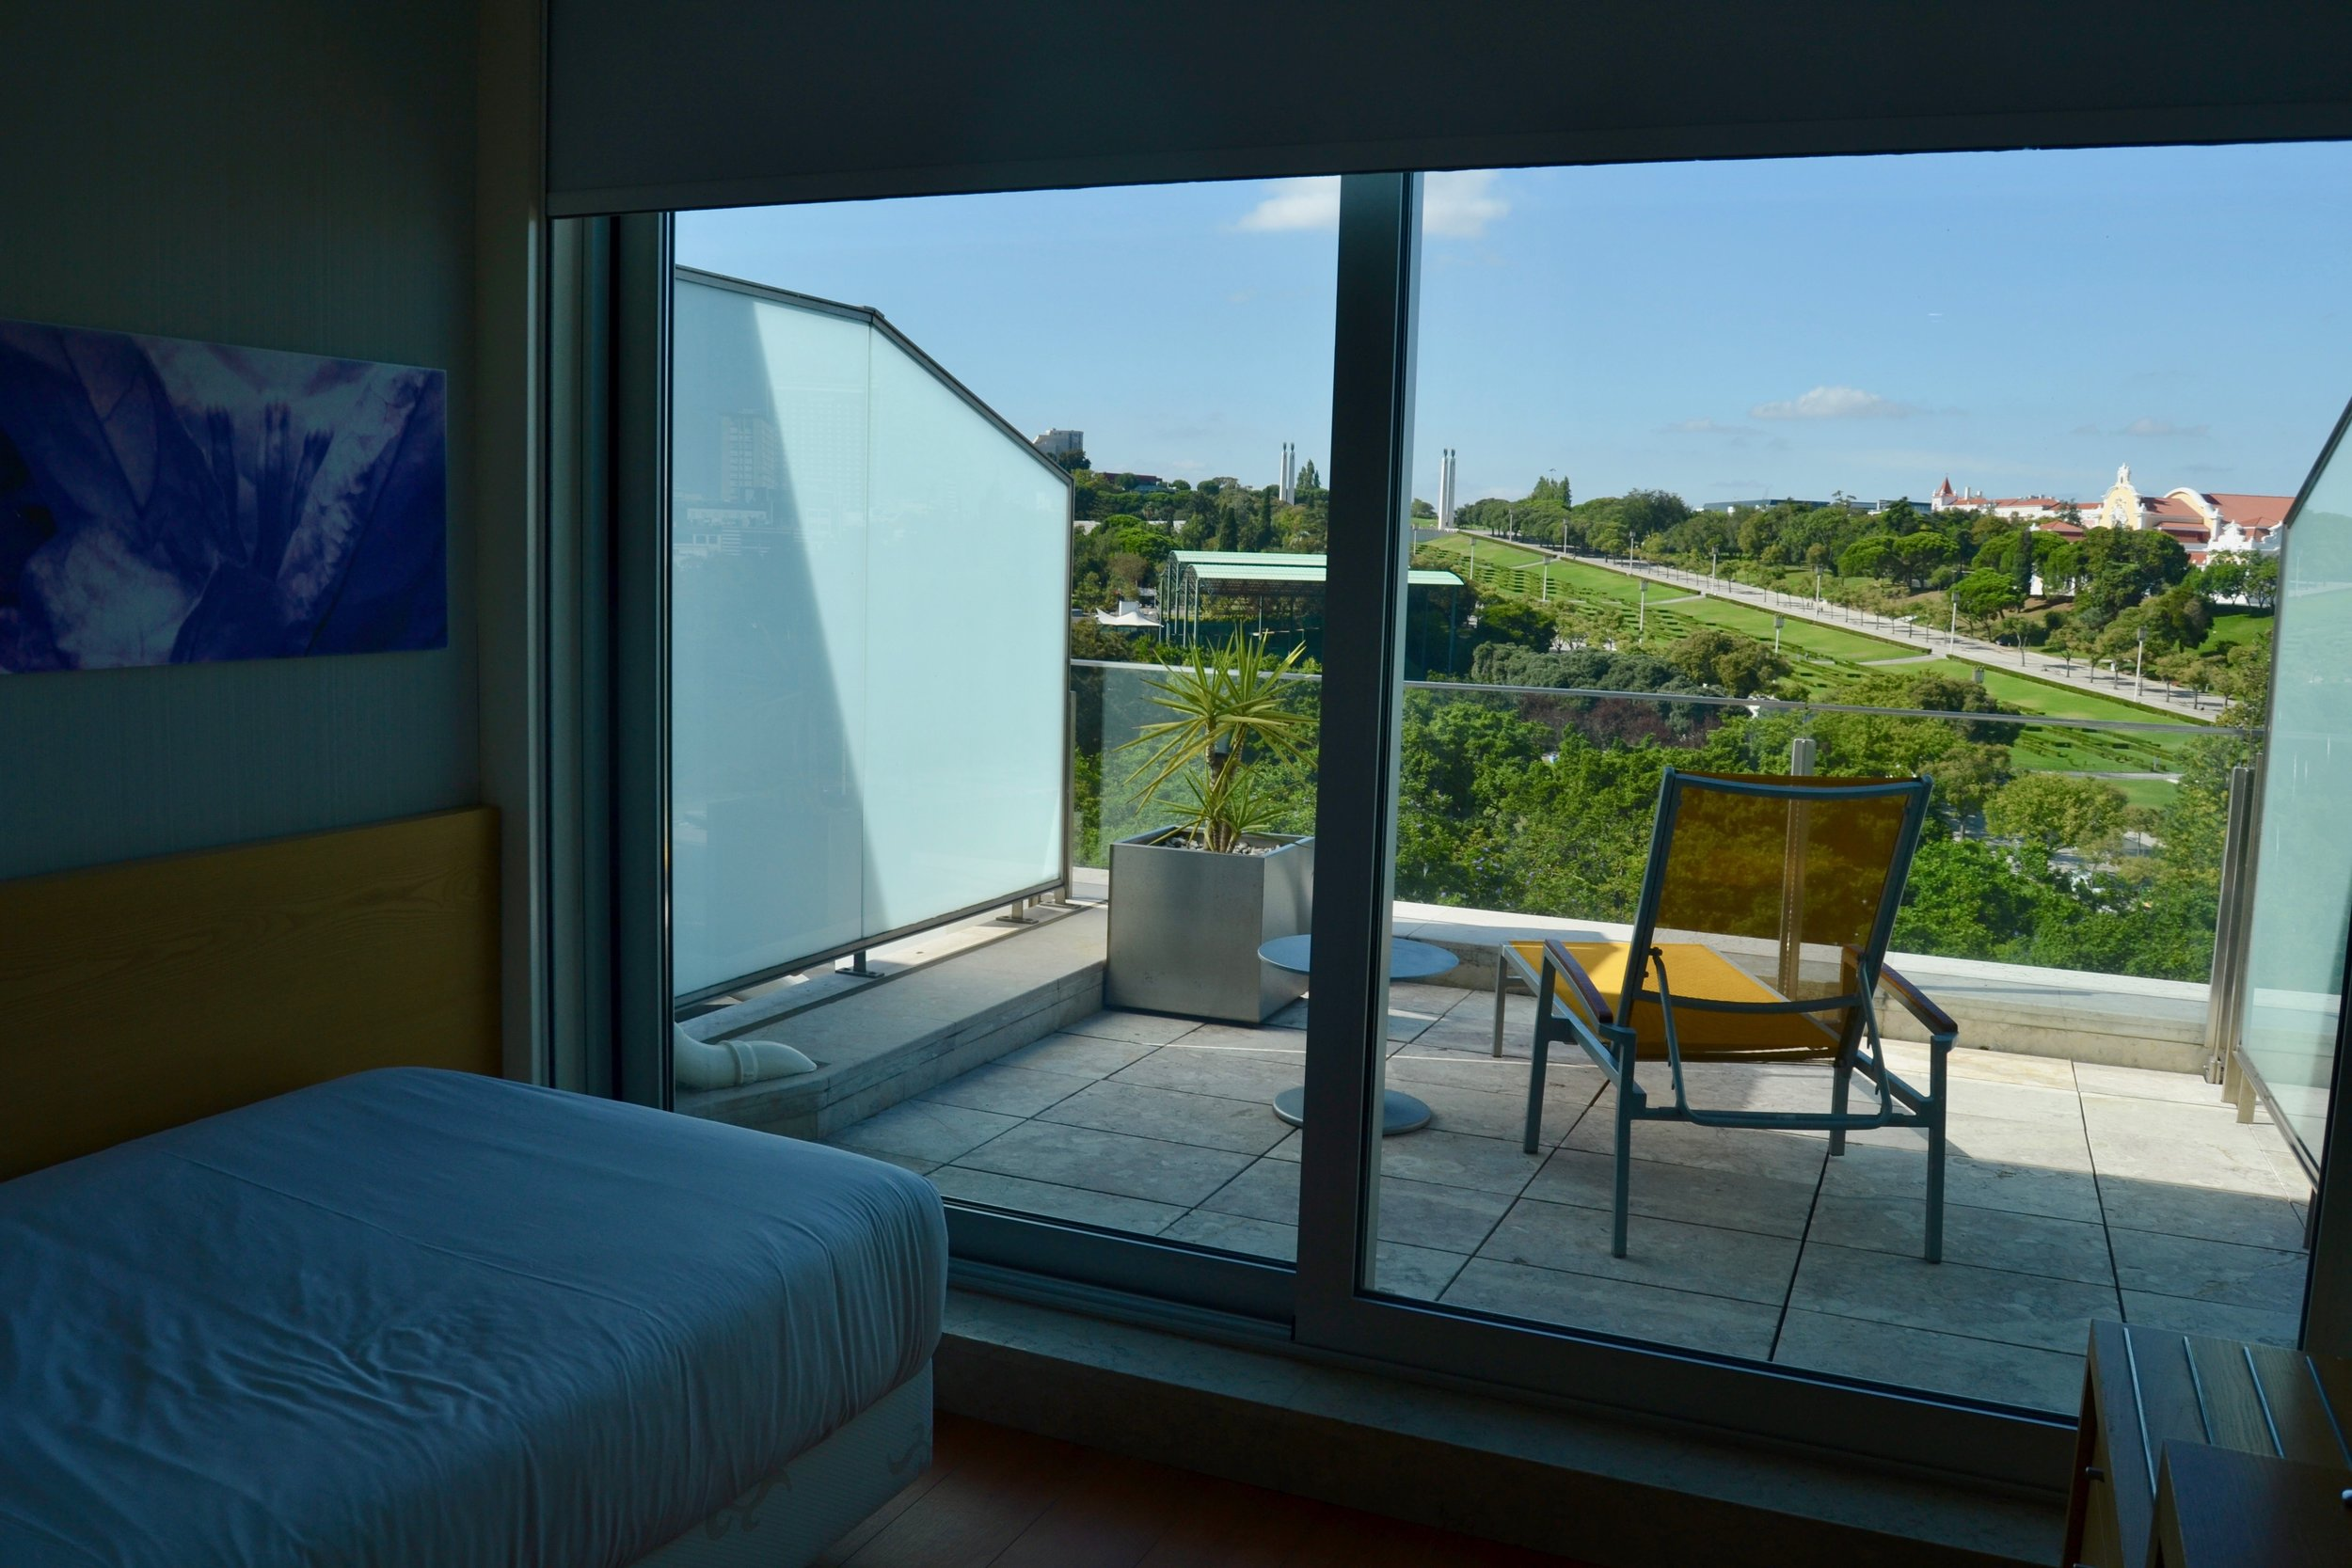 A view of my room from the top floor at the HF Fenix Garden Hotel